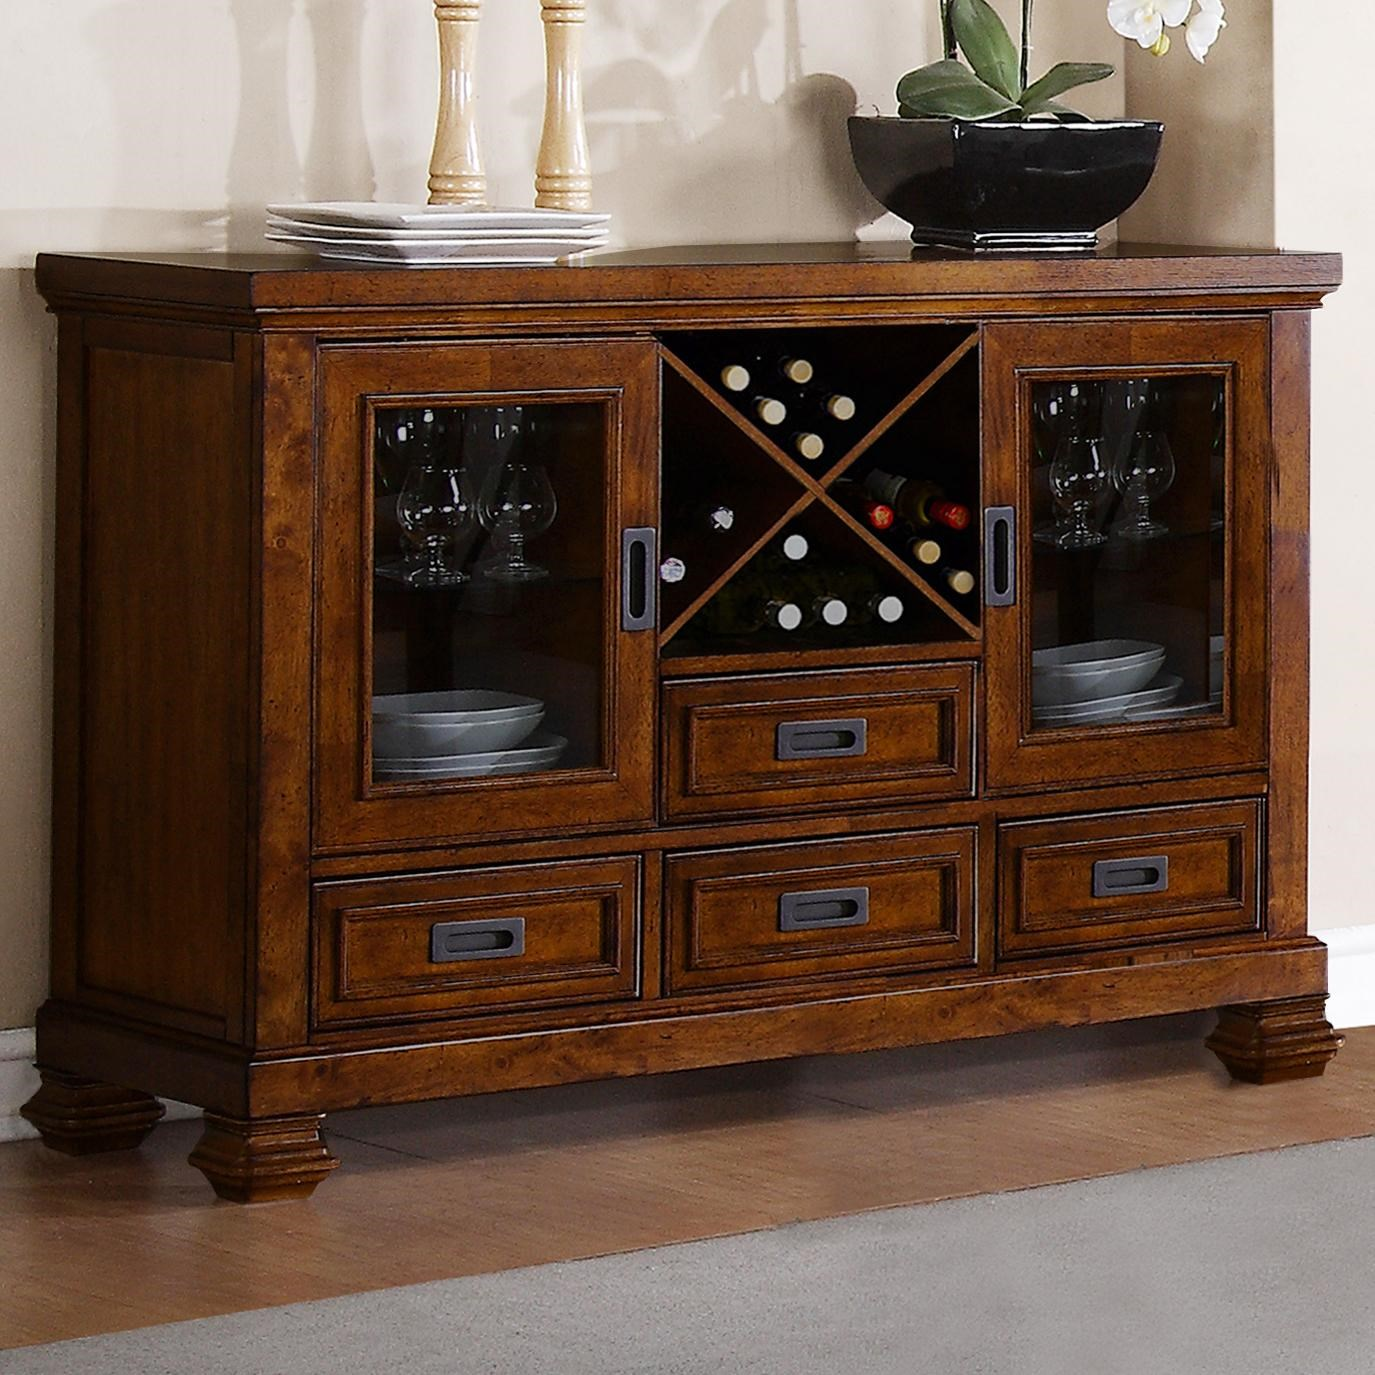 Adirondack Server With Wine Rack By Warehouse M